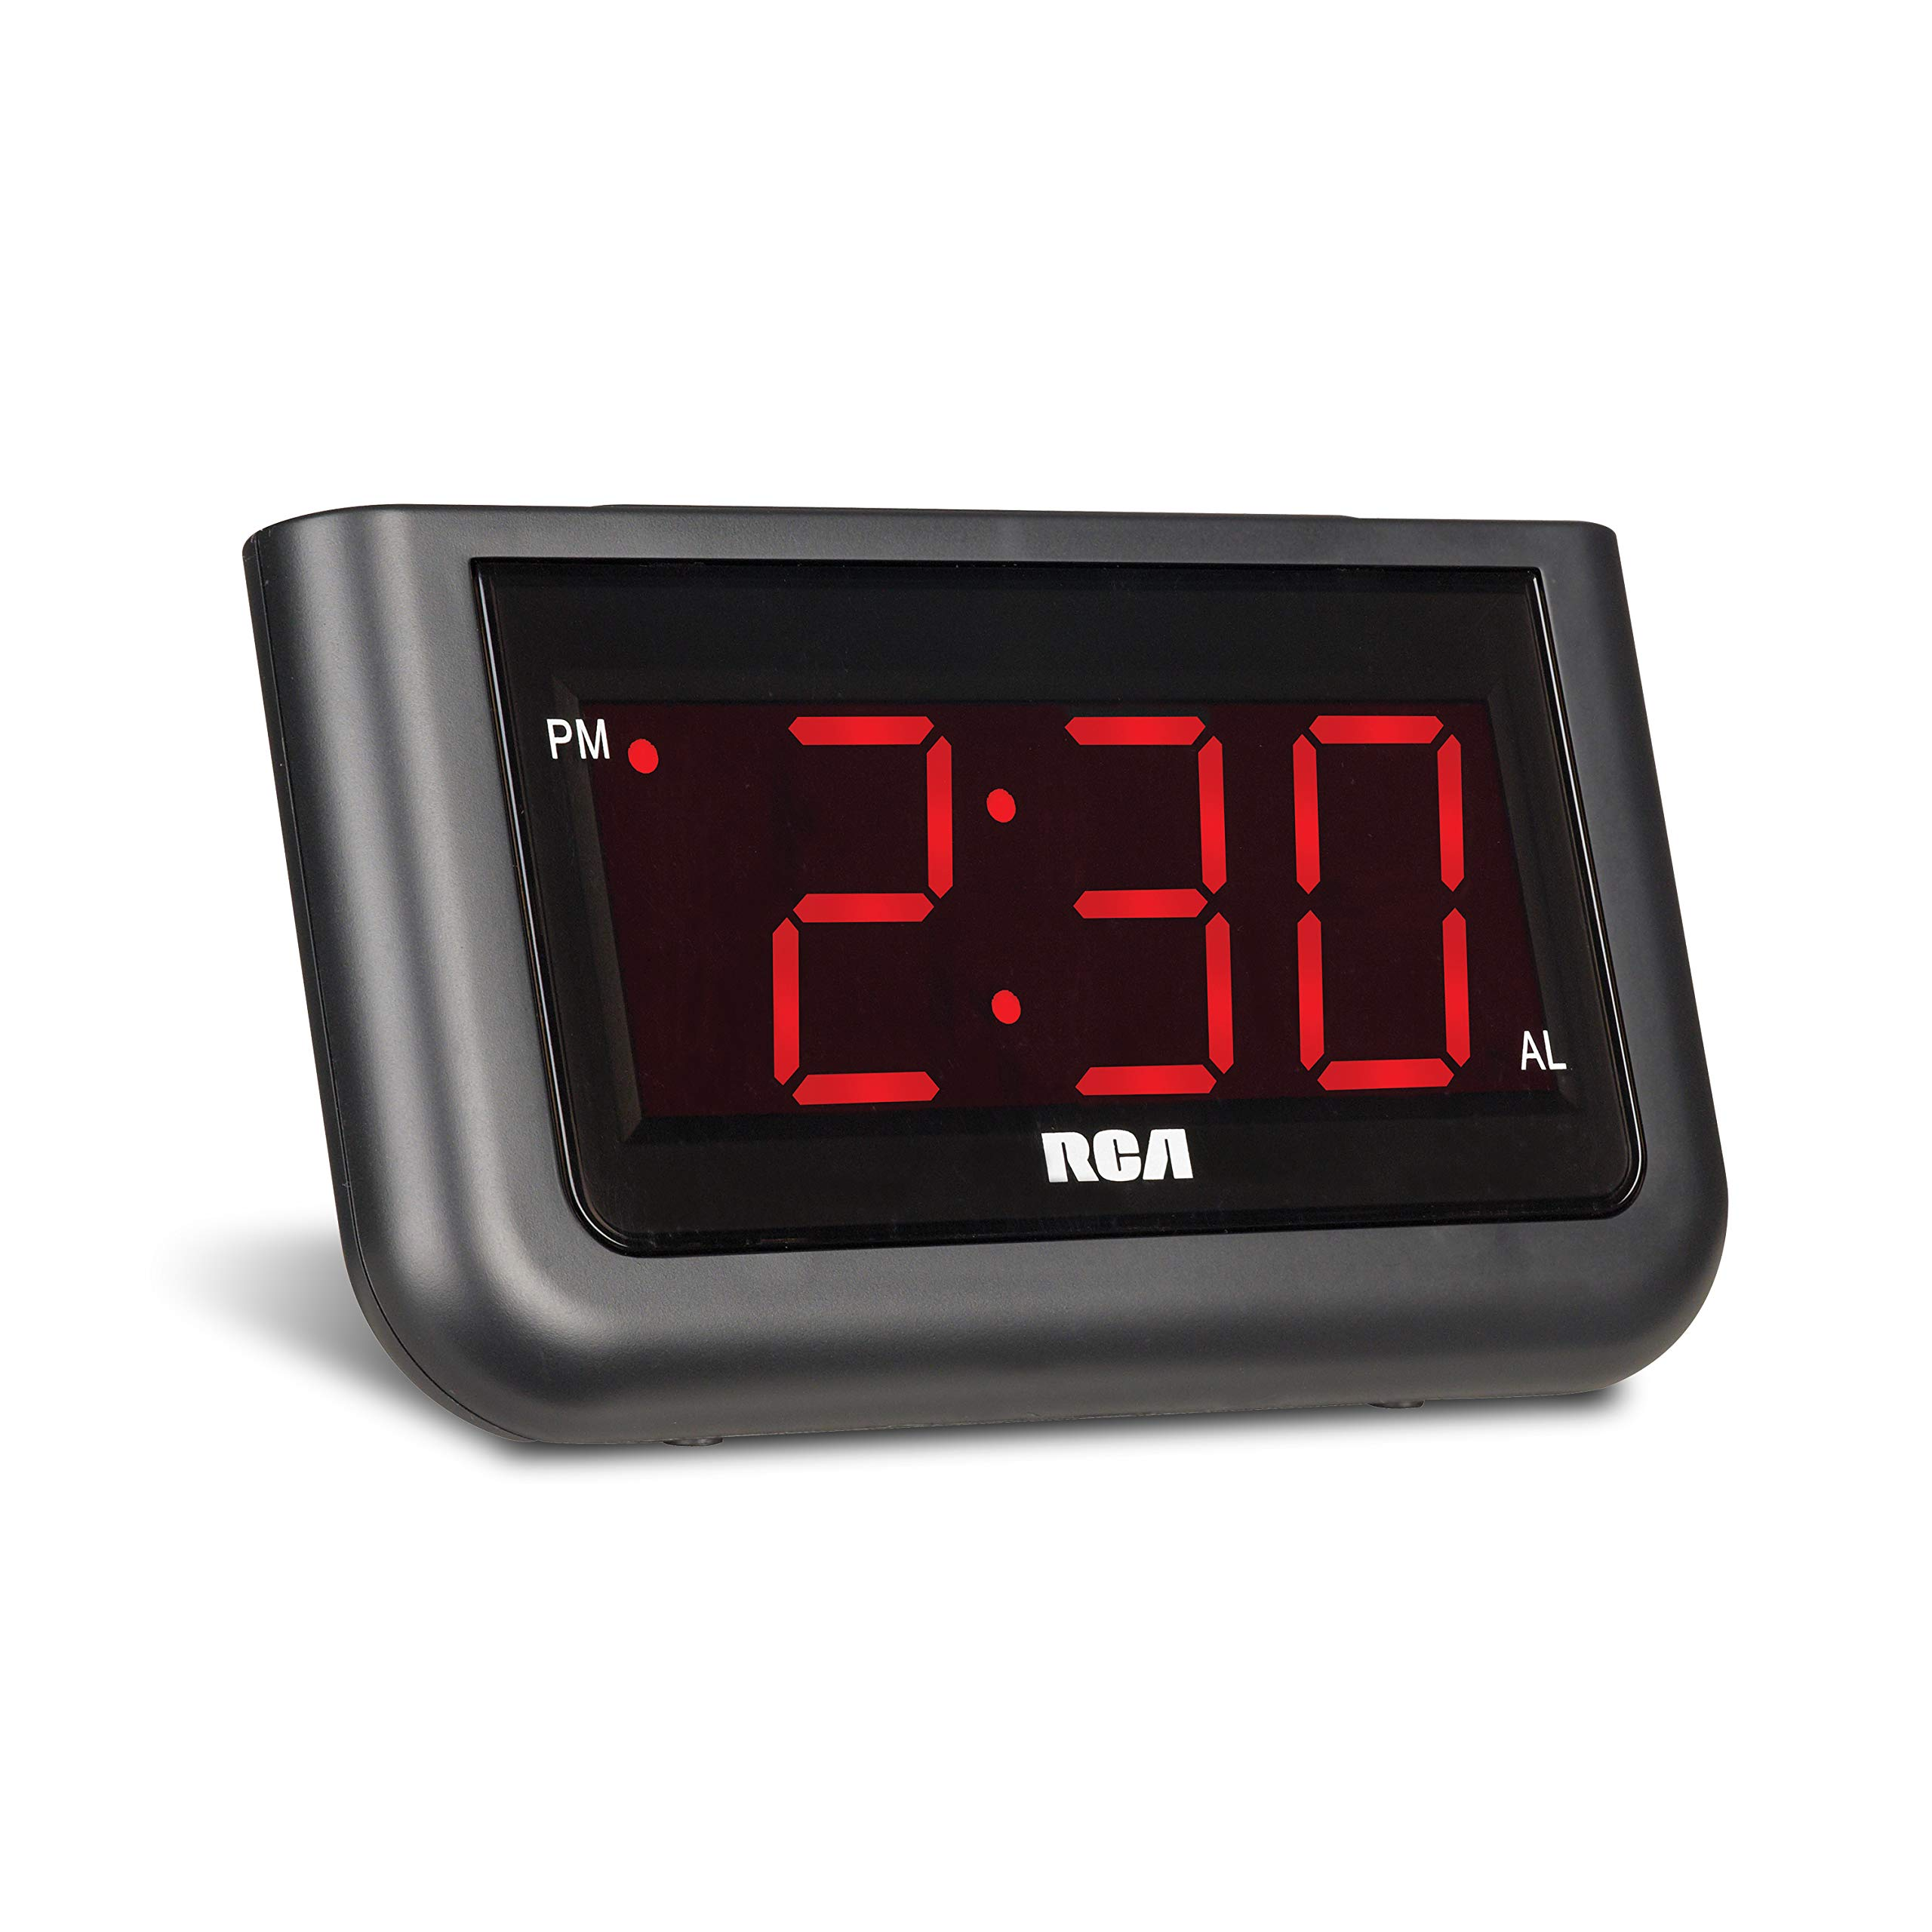 Rca Digital Alarm Clock Large 1 4 Led Display With Brightness Control And Repeating Snooze Ac Powered Compact Reliable Easy To Use Black Home Audio Theater